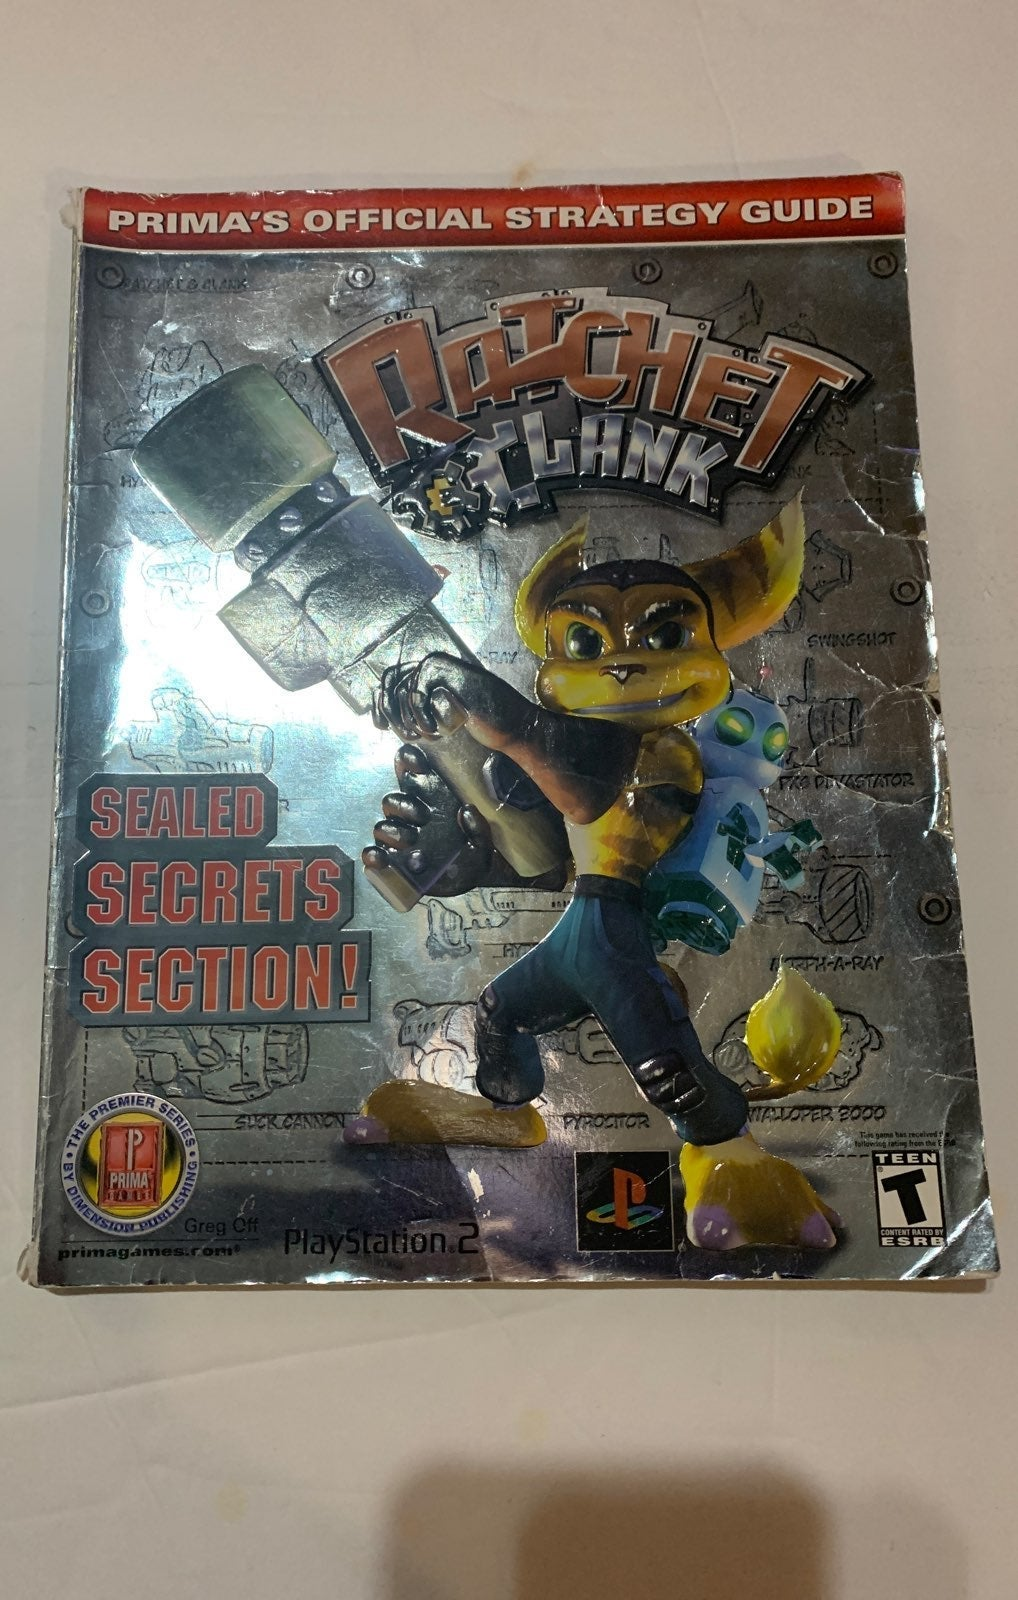 Ratchet and Clank PS2 Strategy Guide